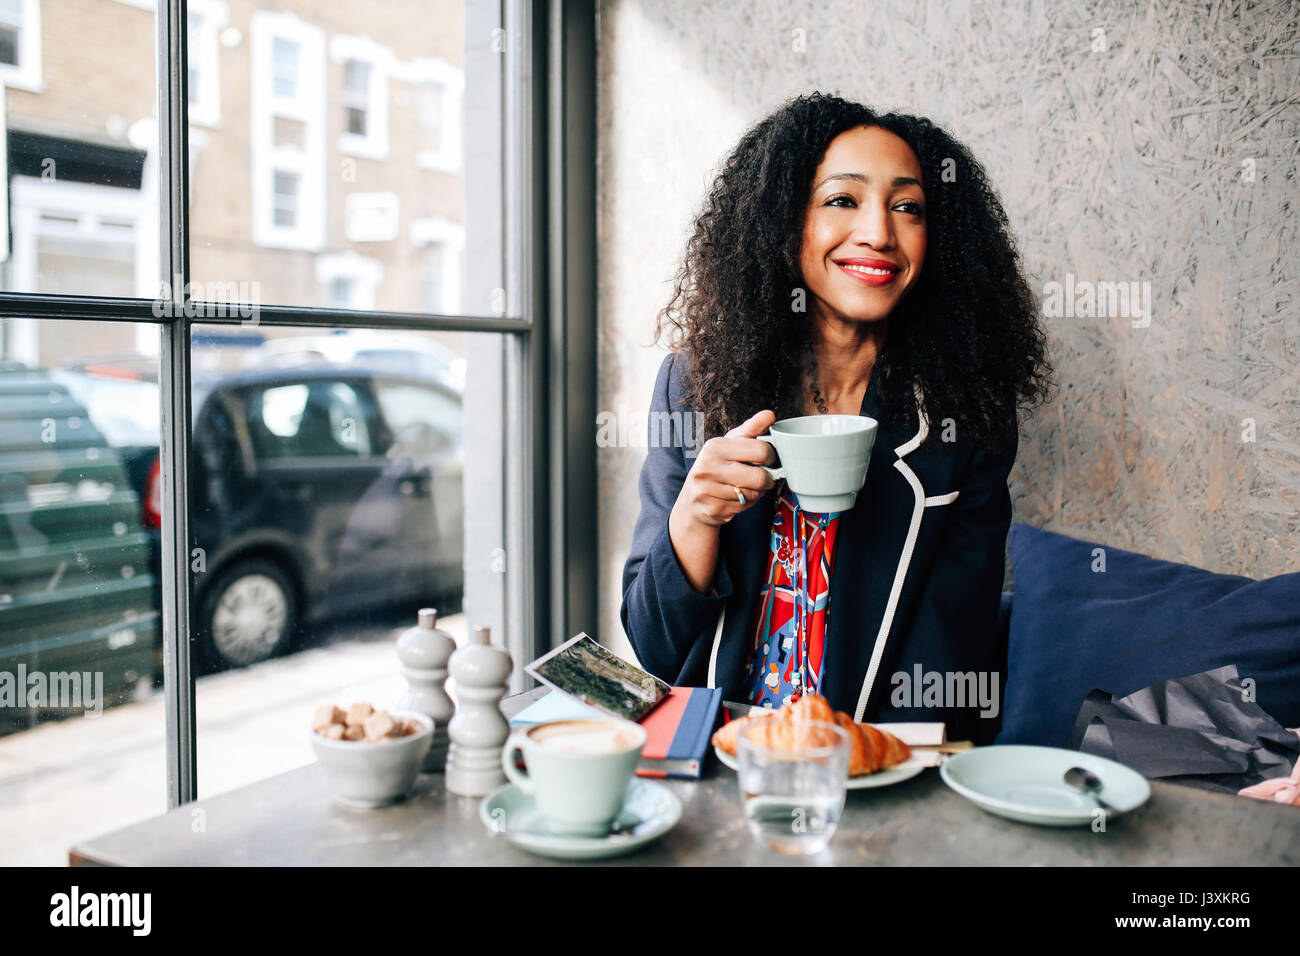 Mid adult woman holding Coffee cup in cafe Photo Stock